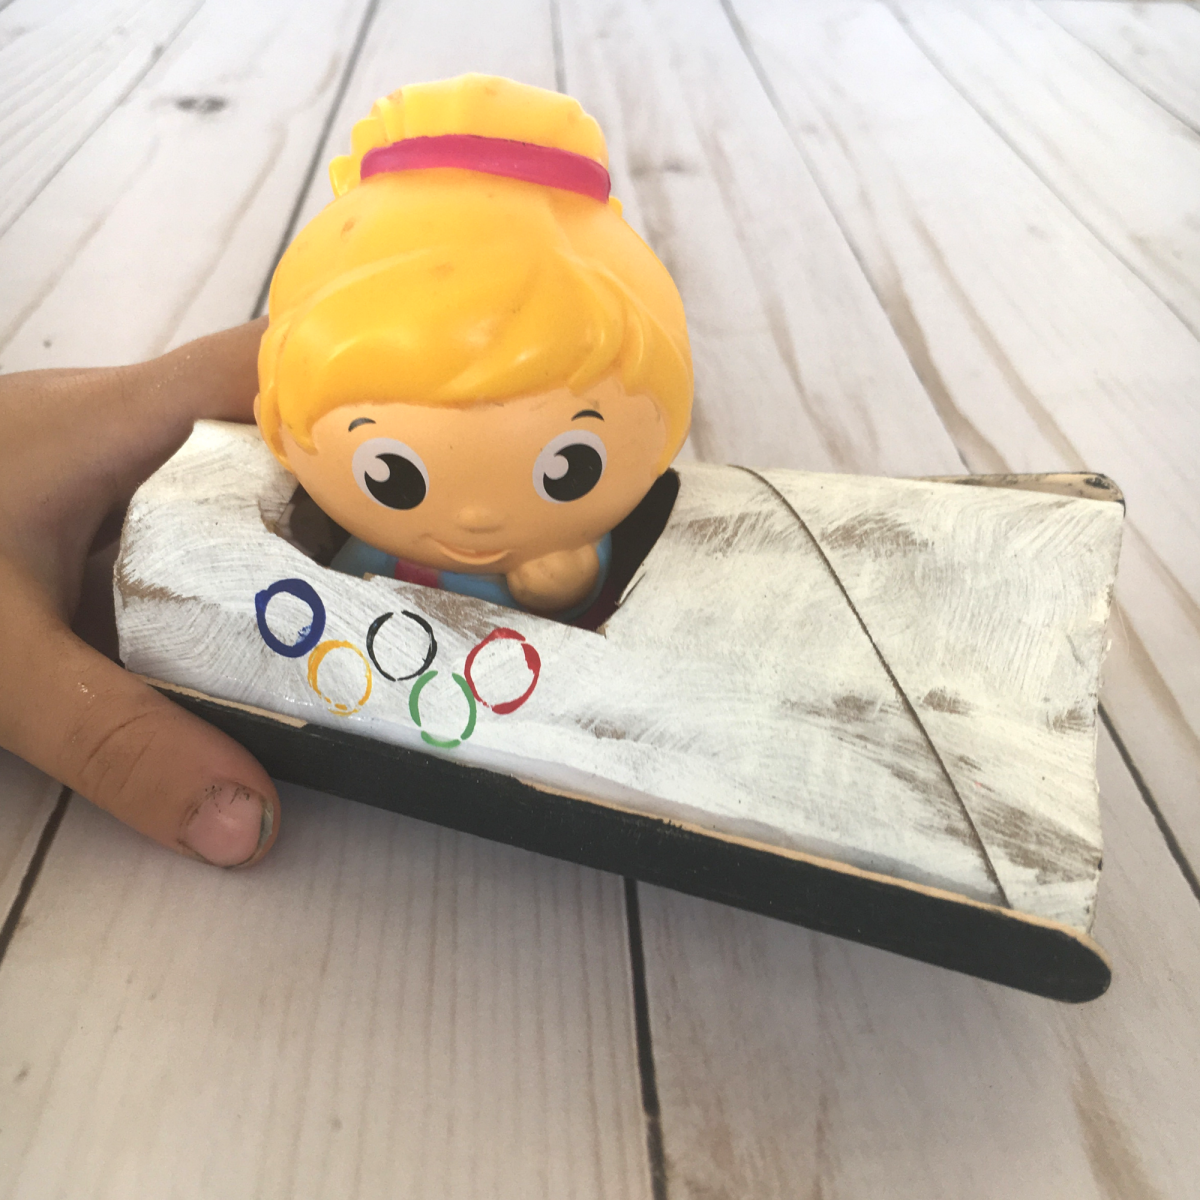 Winter Olympics Craft - Bobsled with Toy